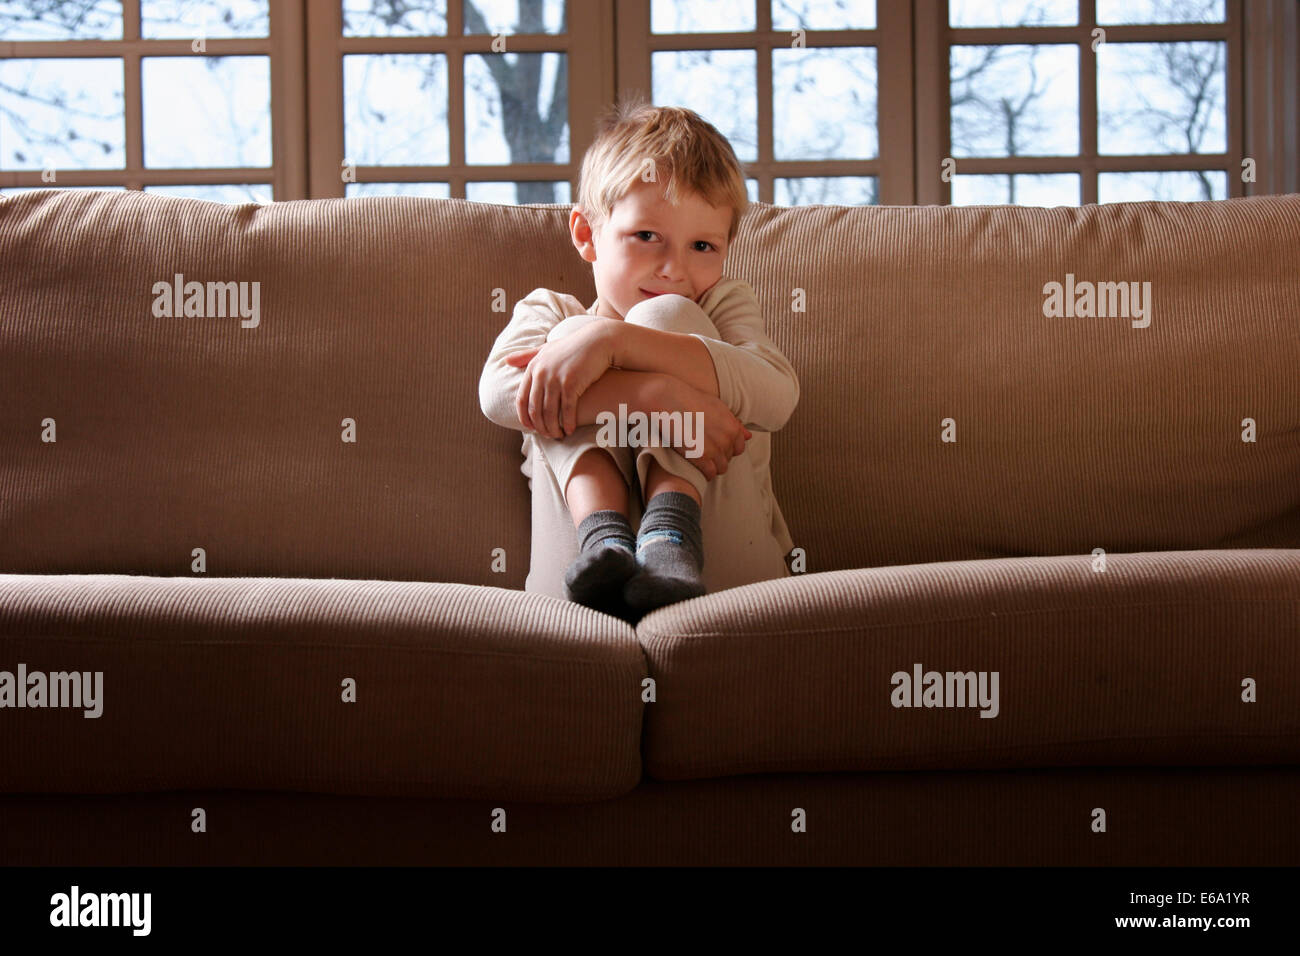 boy,domestic life,sofa - Stock Image